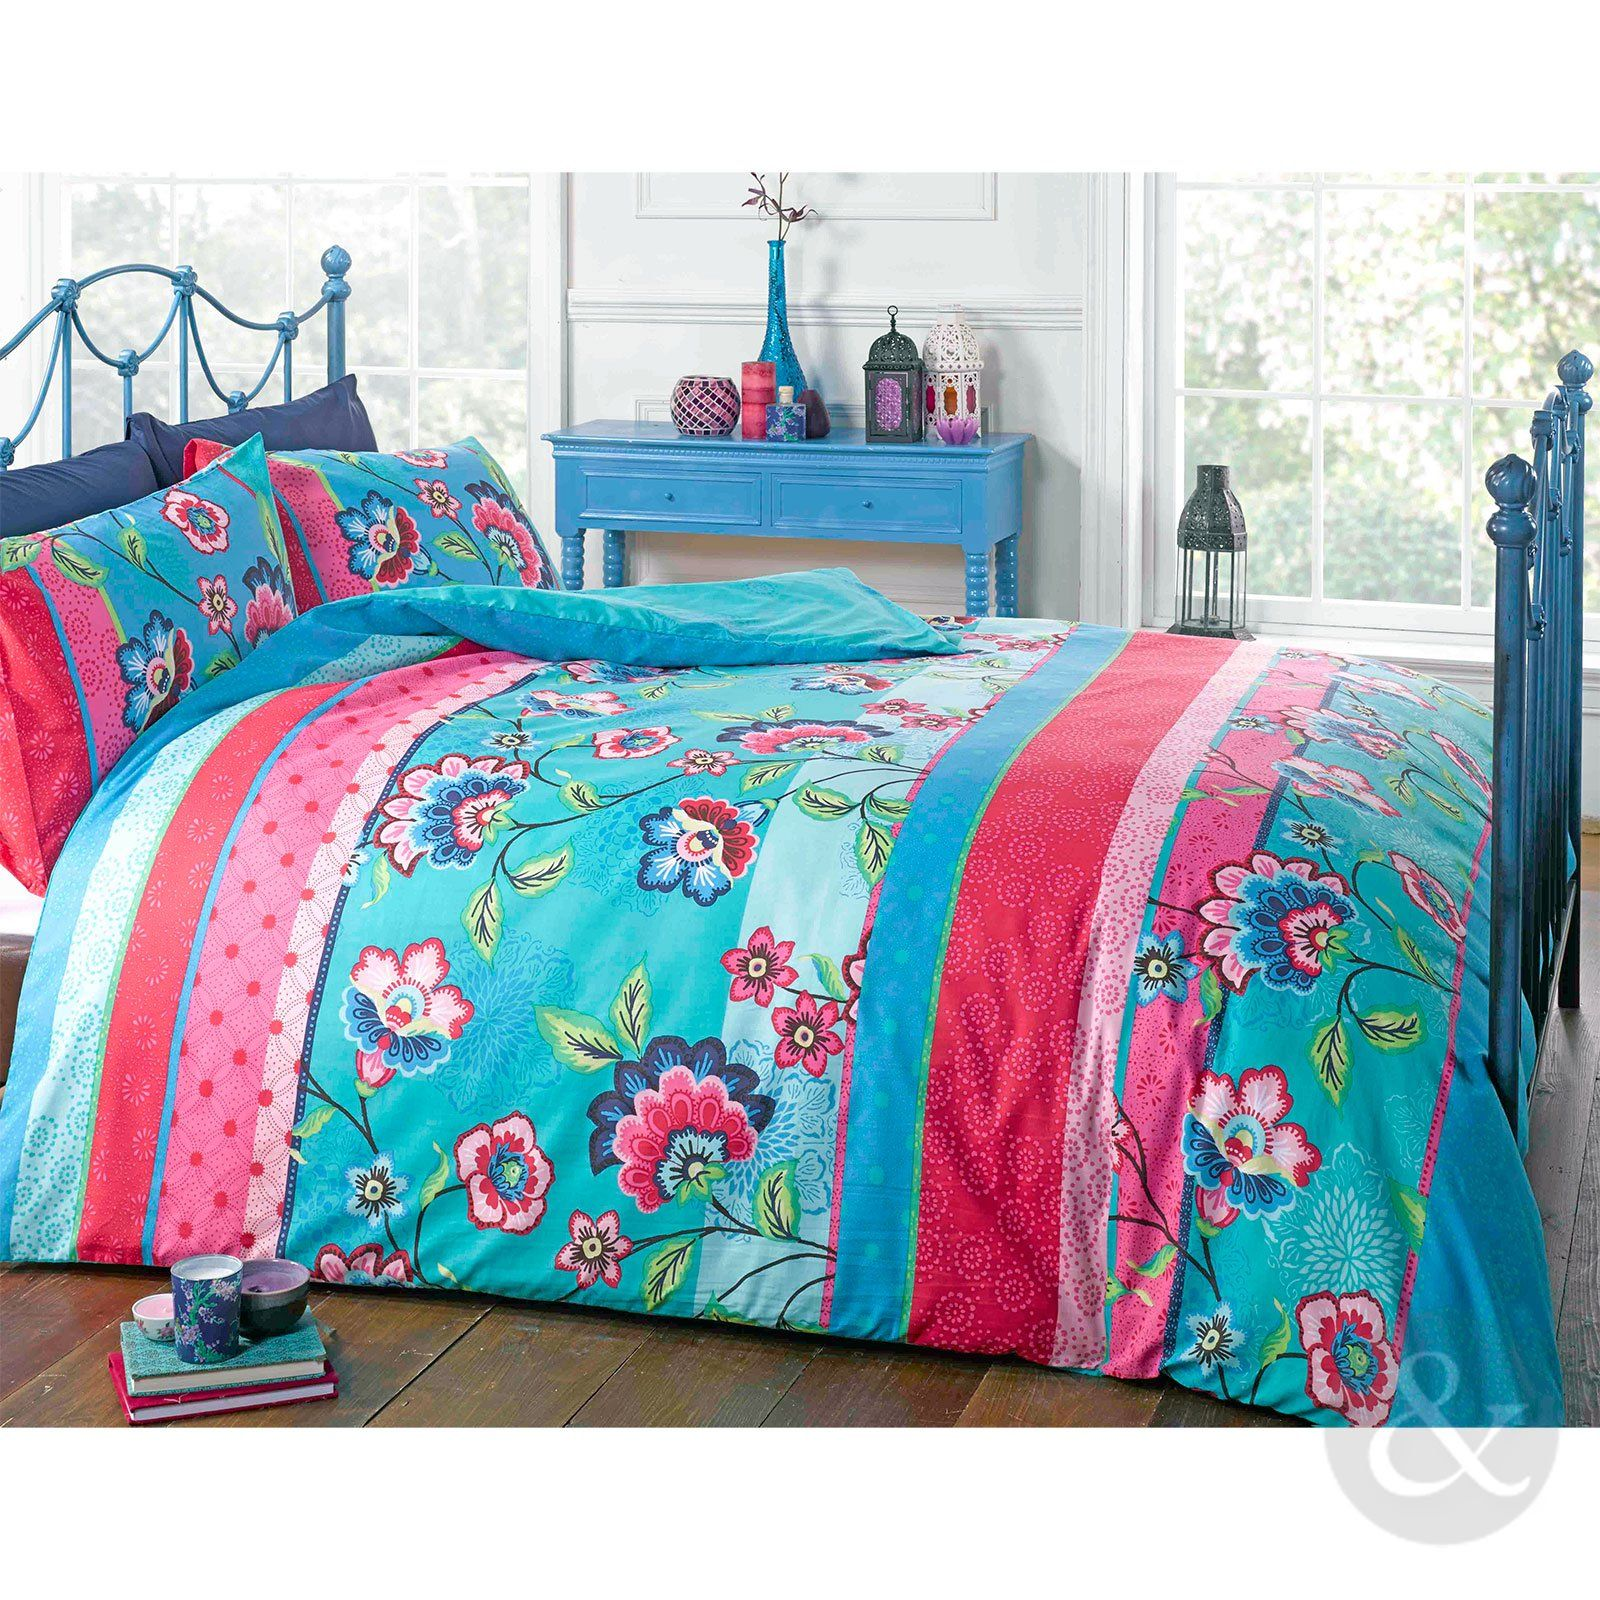 RETRO ORIENTAL DUVET COVER - Floral Reversible Teal Blue & Pink ...